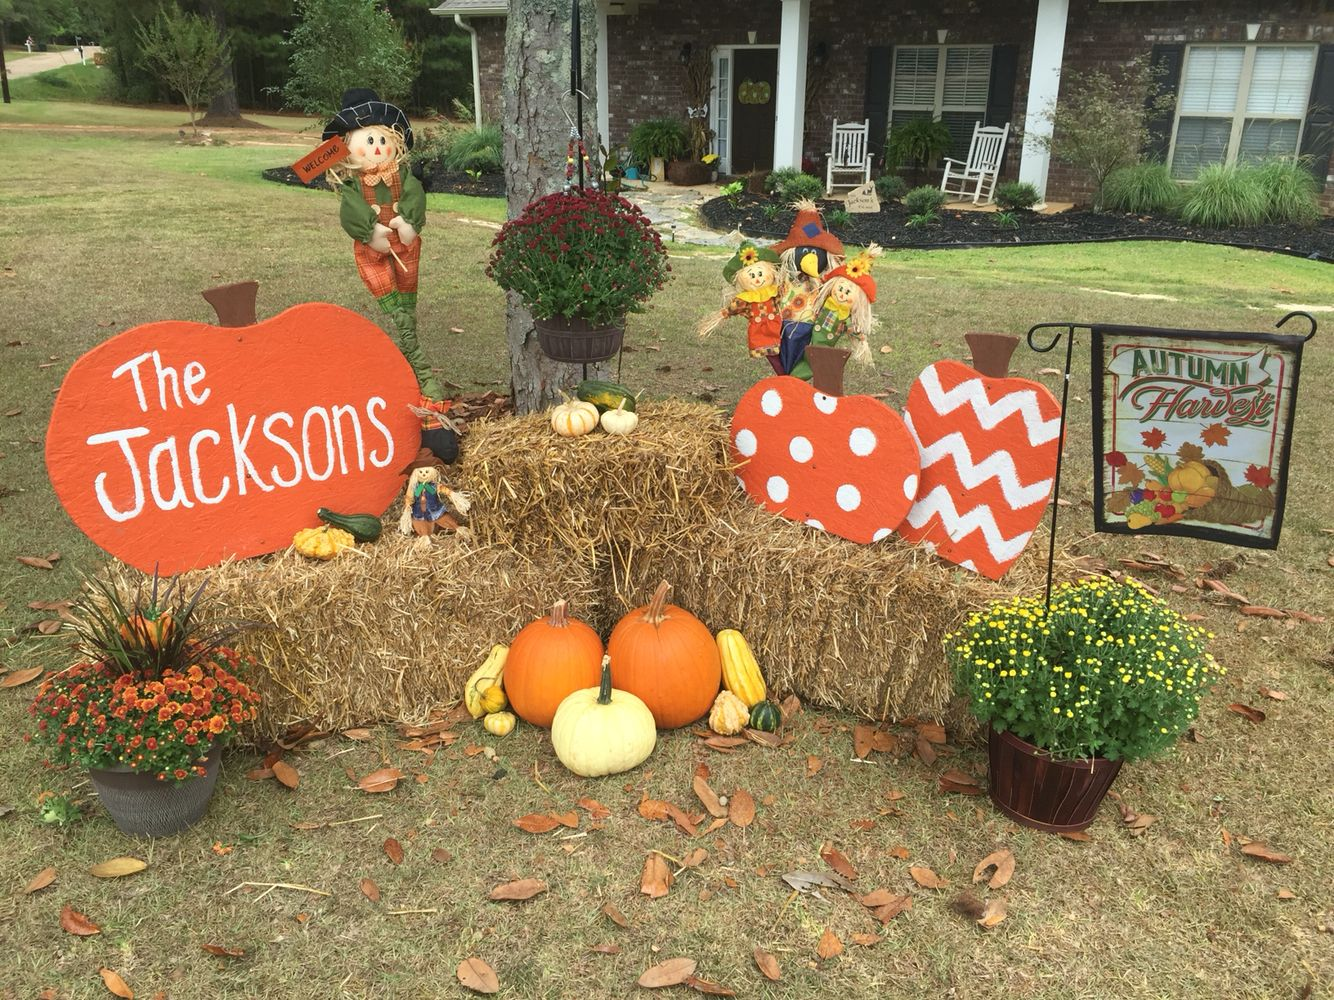 Doors pleasant fall decorating ideas for outside pinterest autumn - Set Up Beside Porch To The Right Make Pumpkins With Plywood Buy Plant